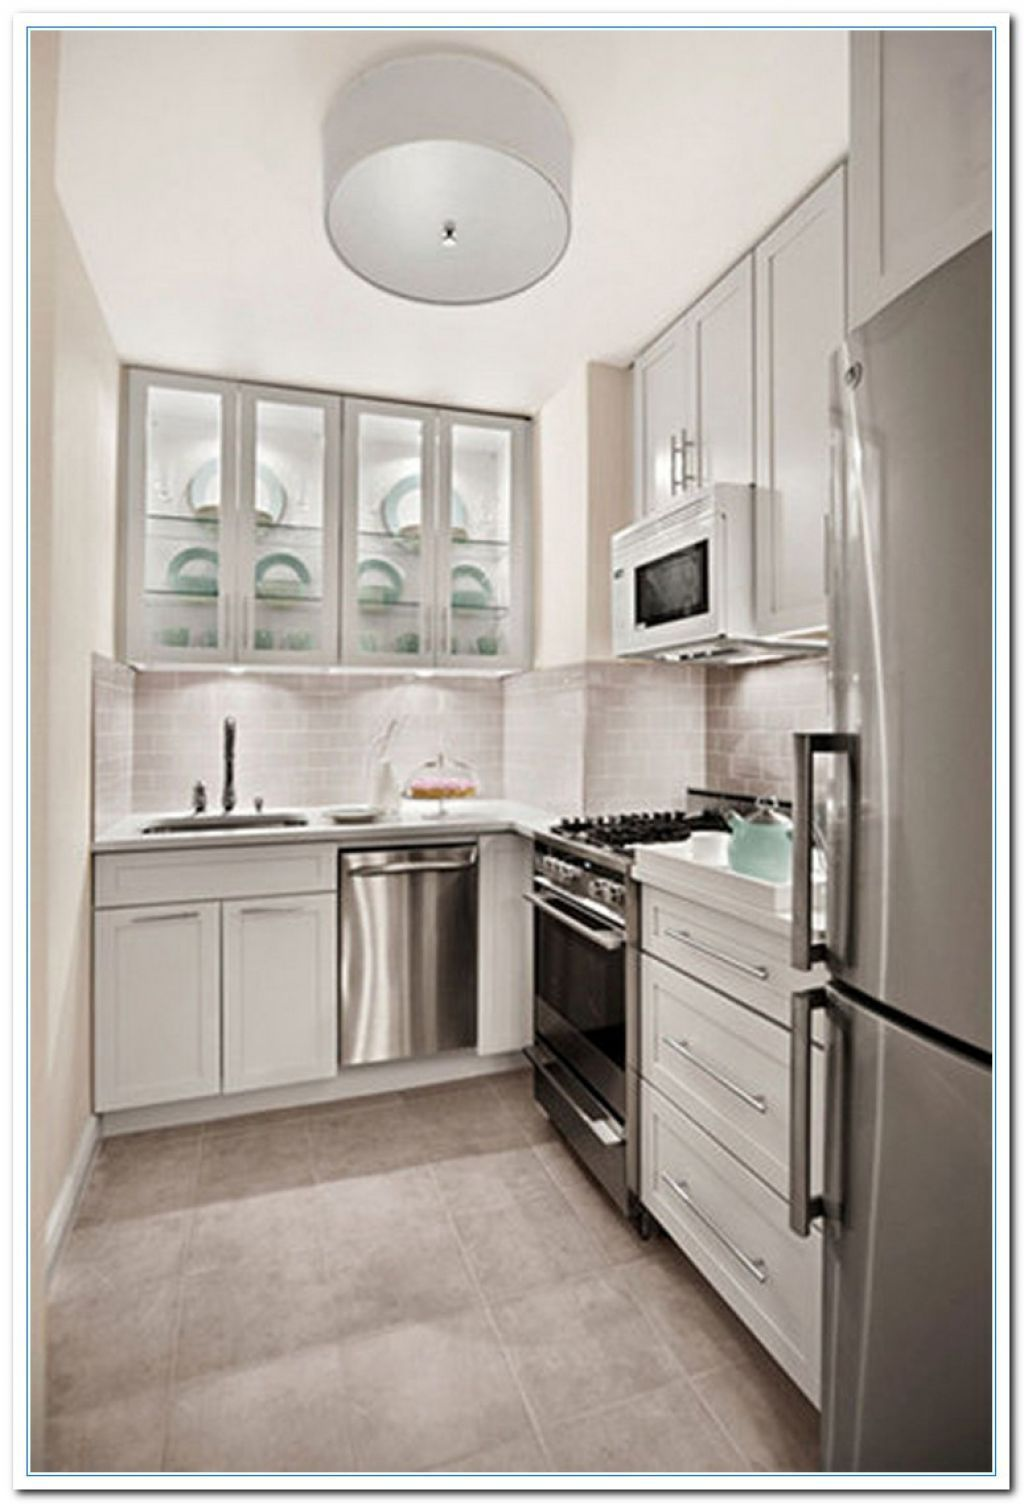 3 Tips For A Functional L Shaped Kitchen Design Diy Home Art Small Space Kitchen Kitchen Layout Kitchen Design Small